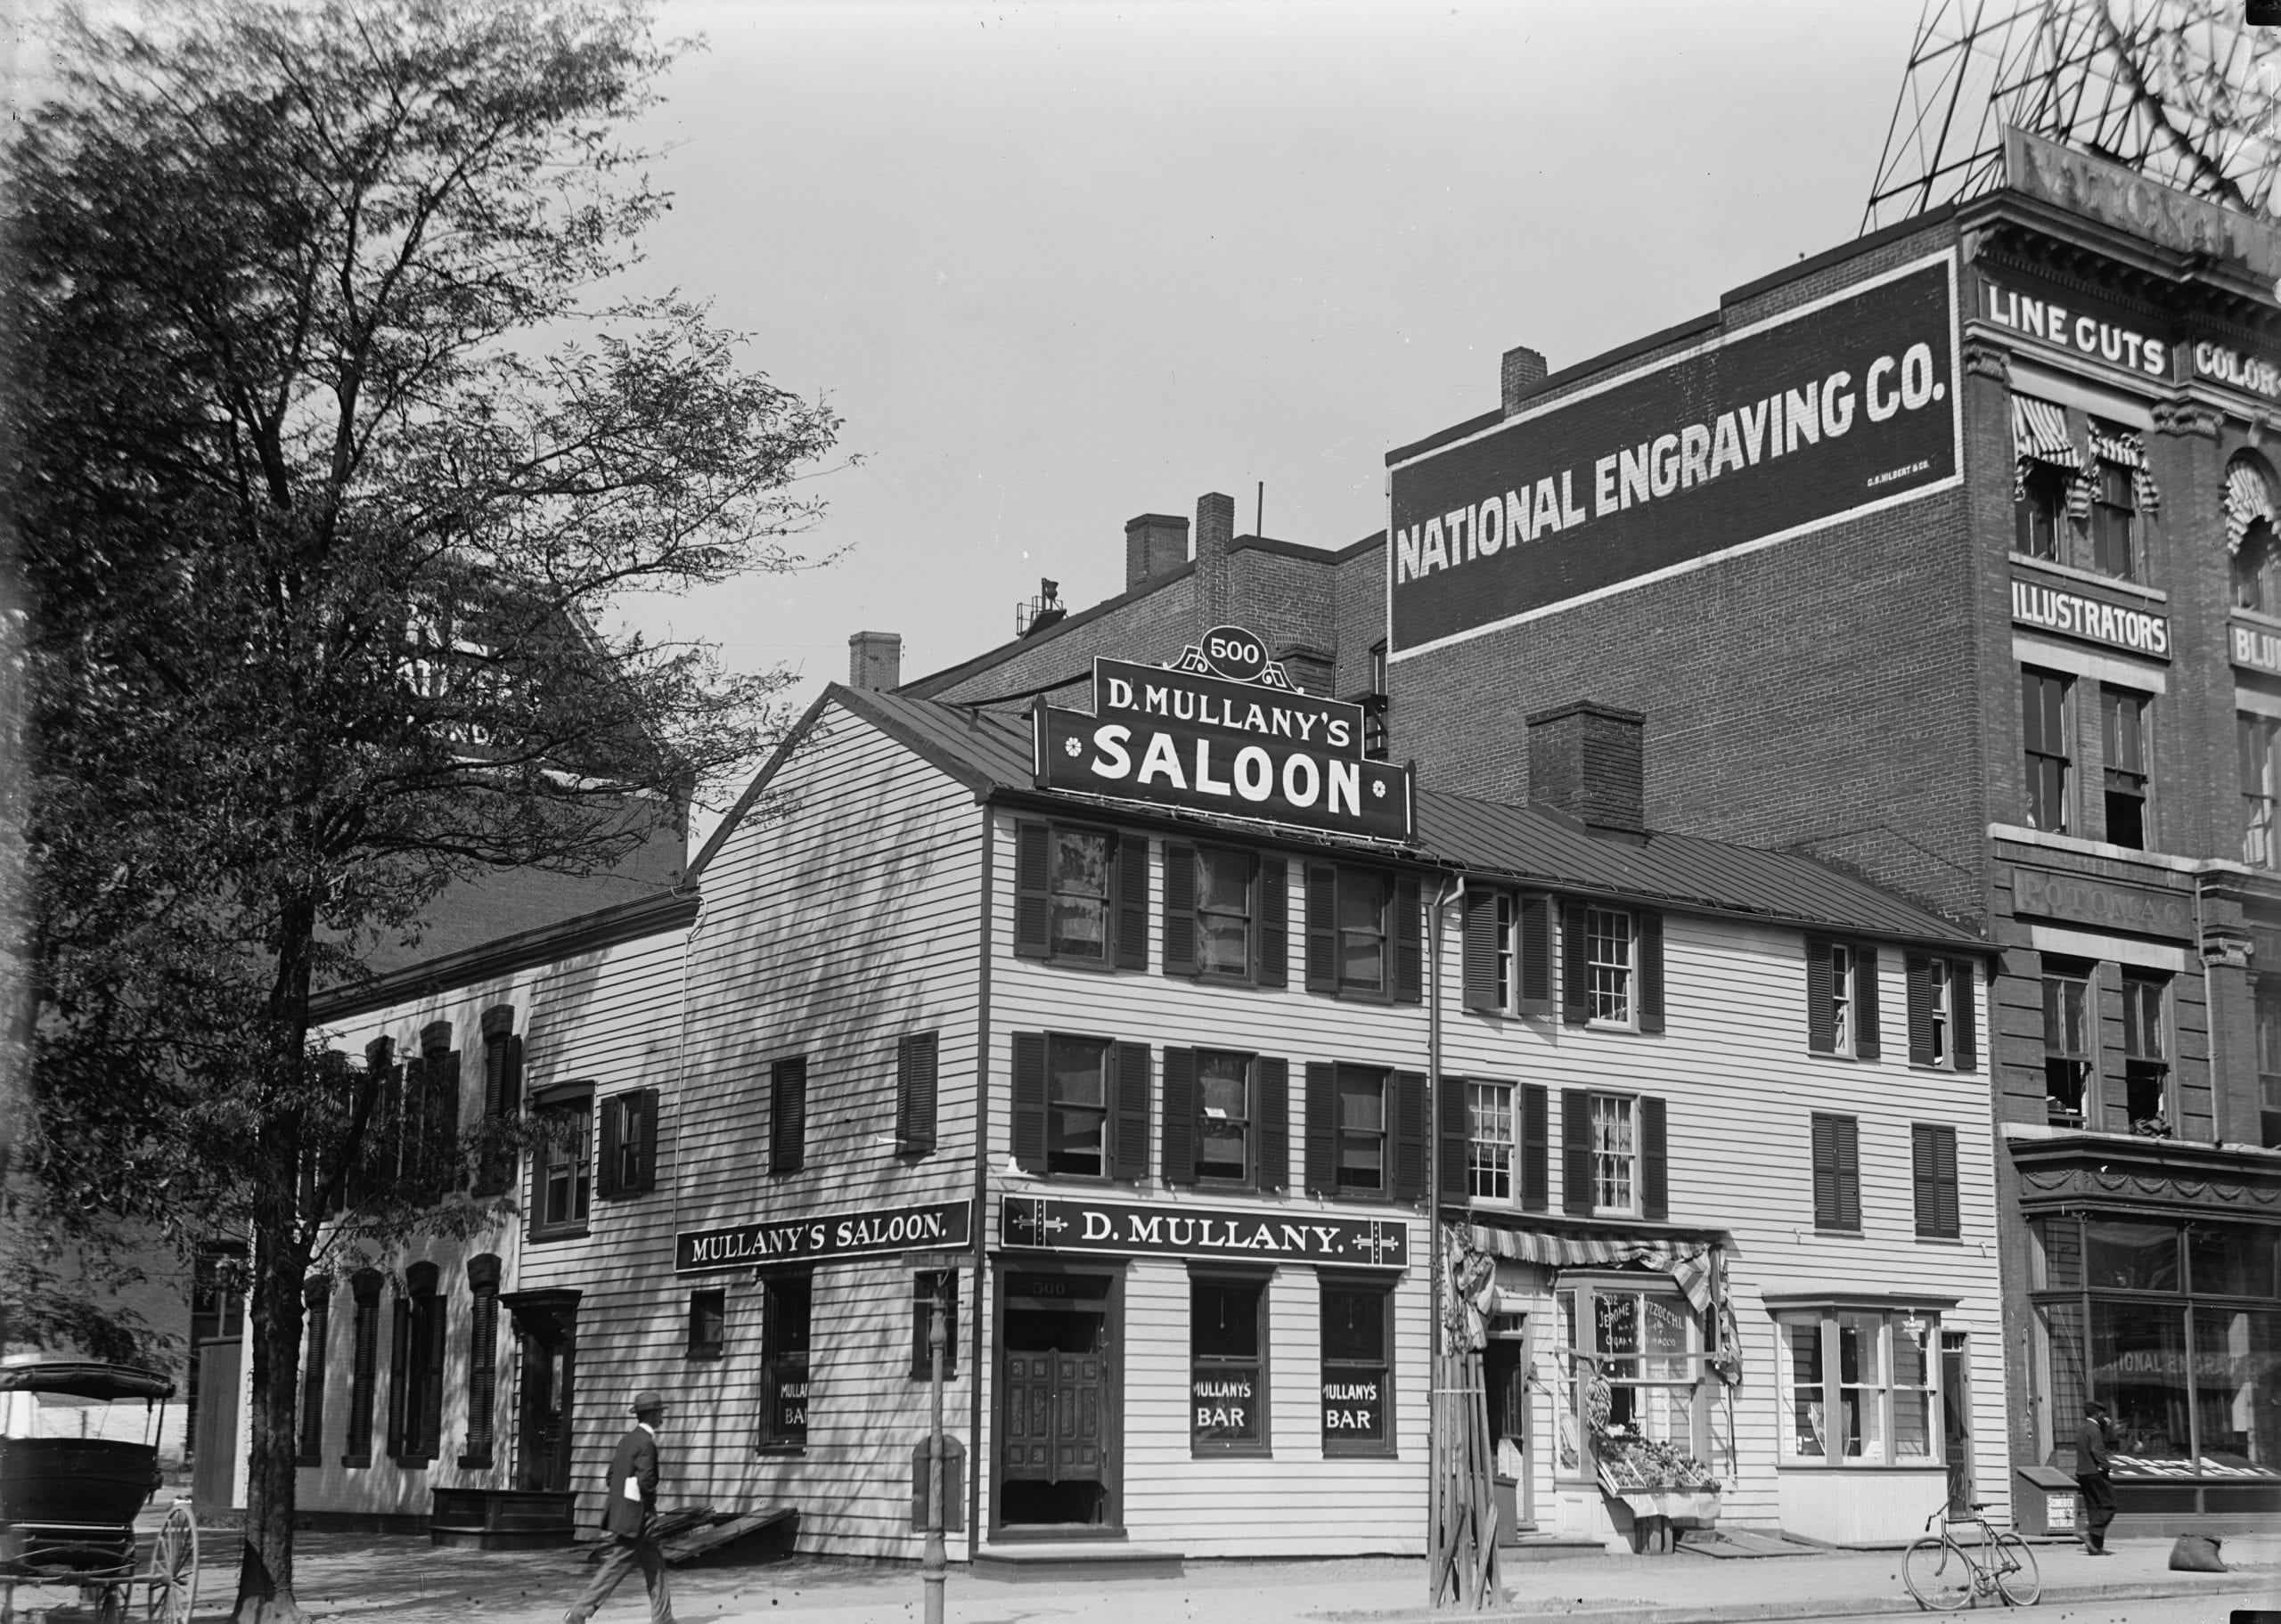 D. Mullany's Saloon at 14th and E St. NW in 1913